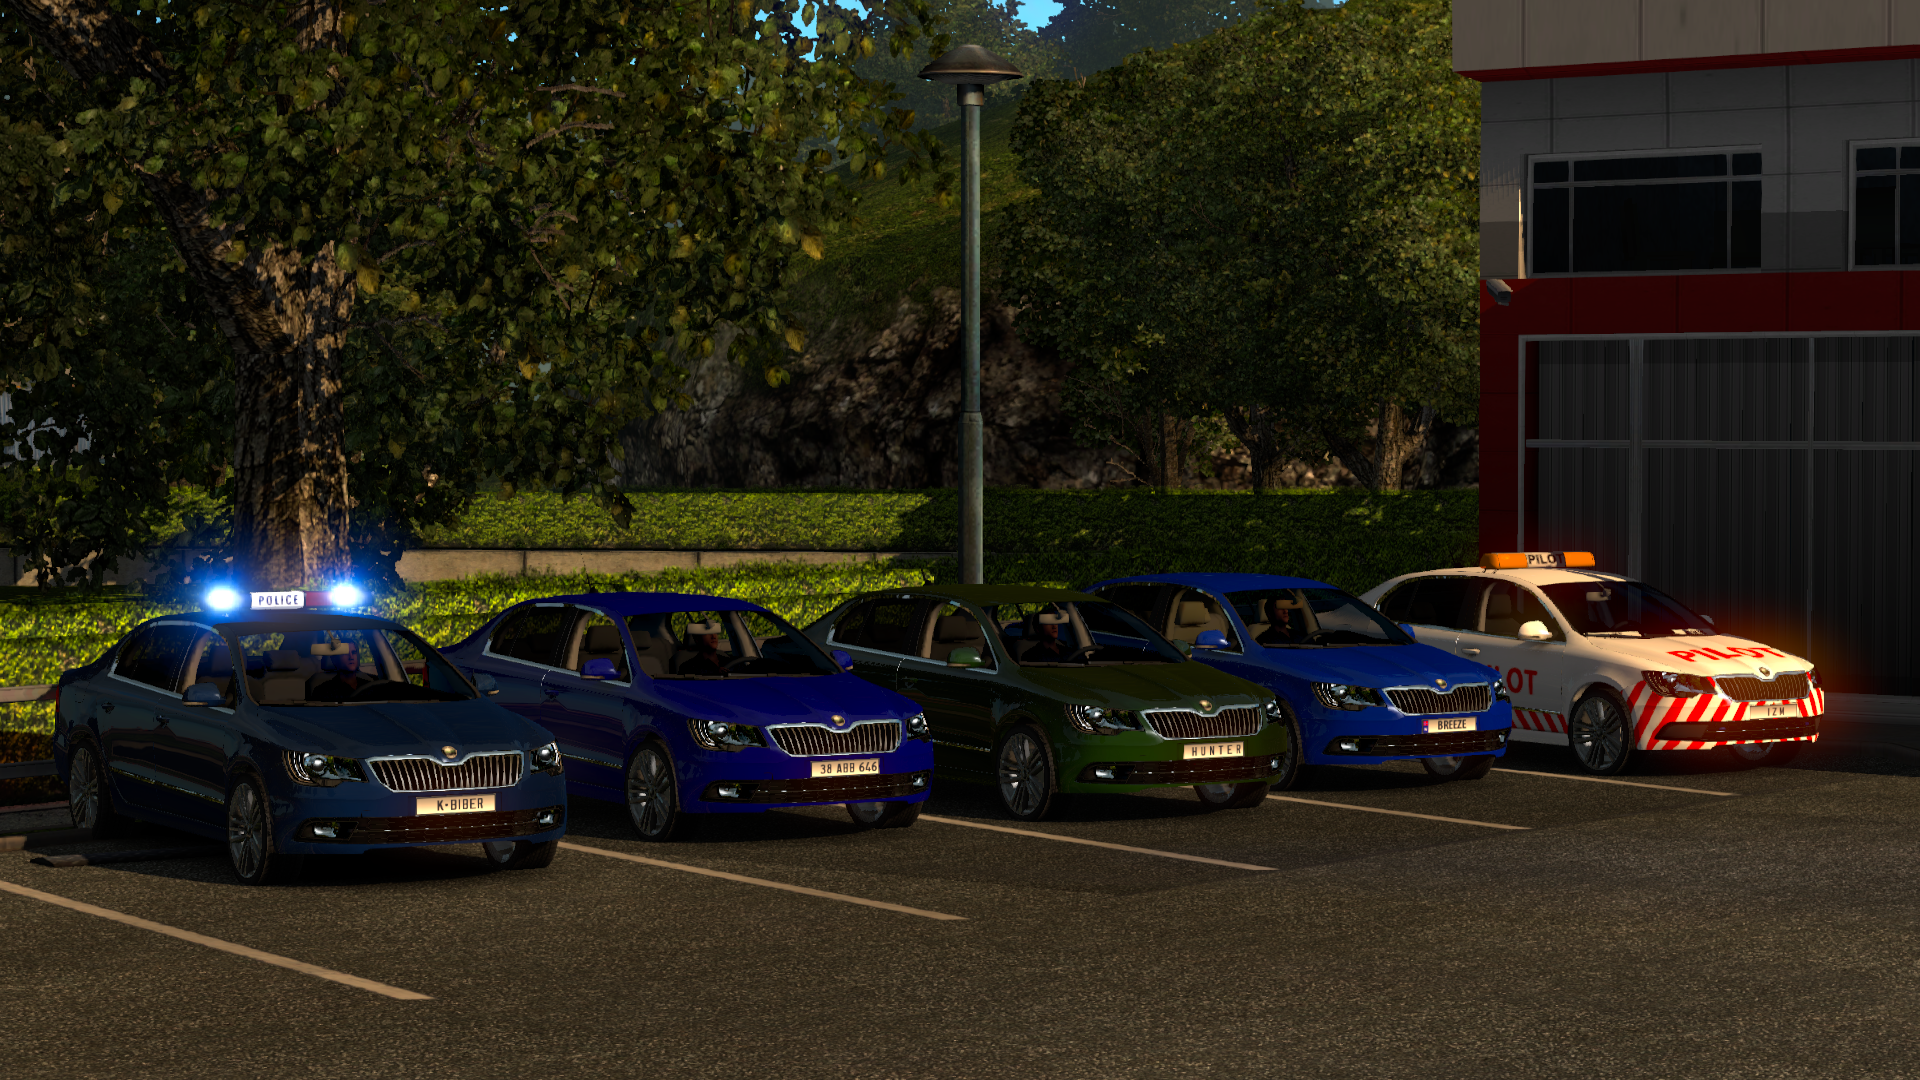 ets2_20180820_173819_00.png